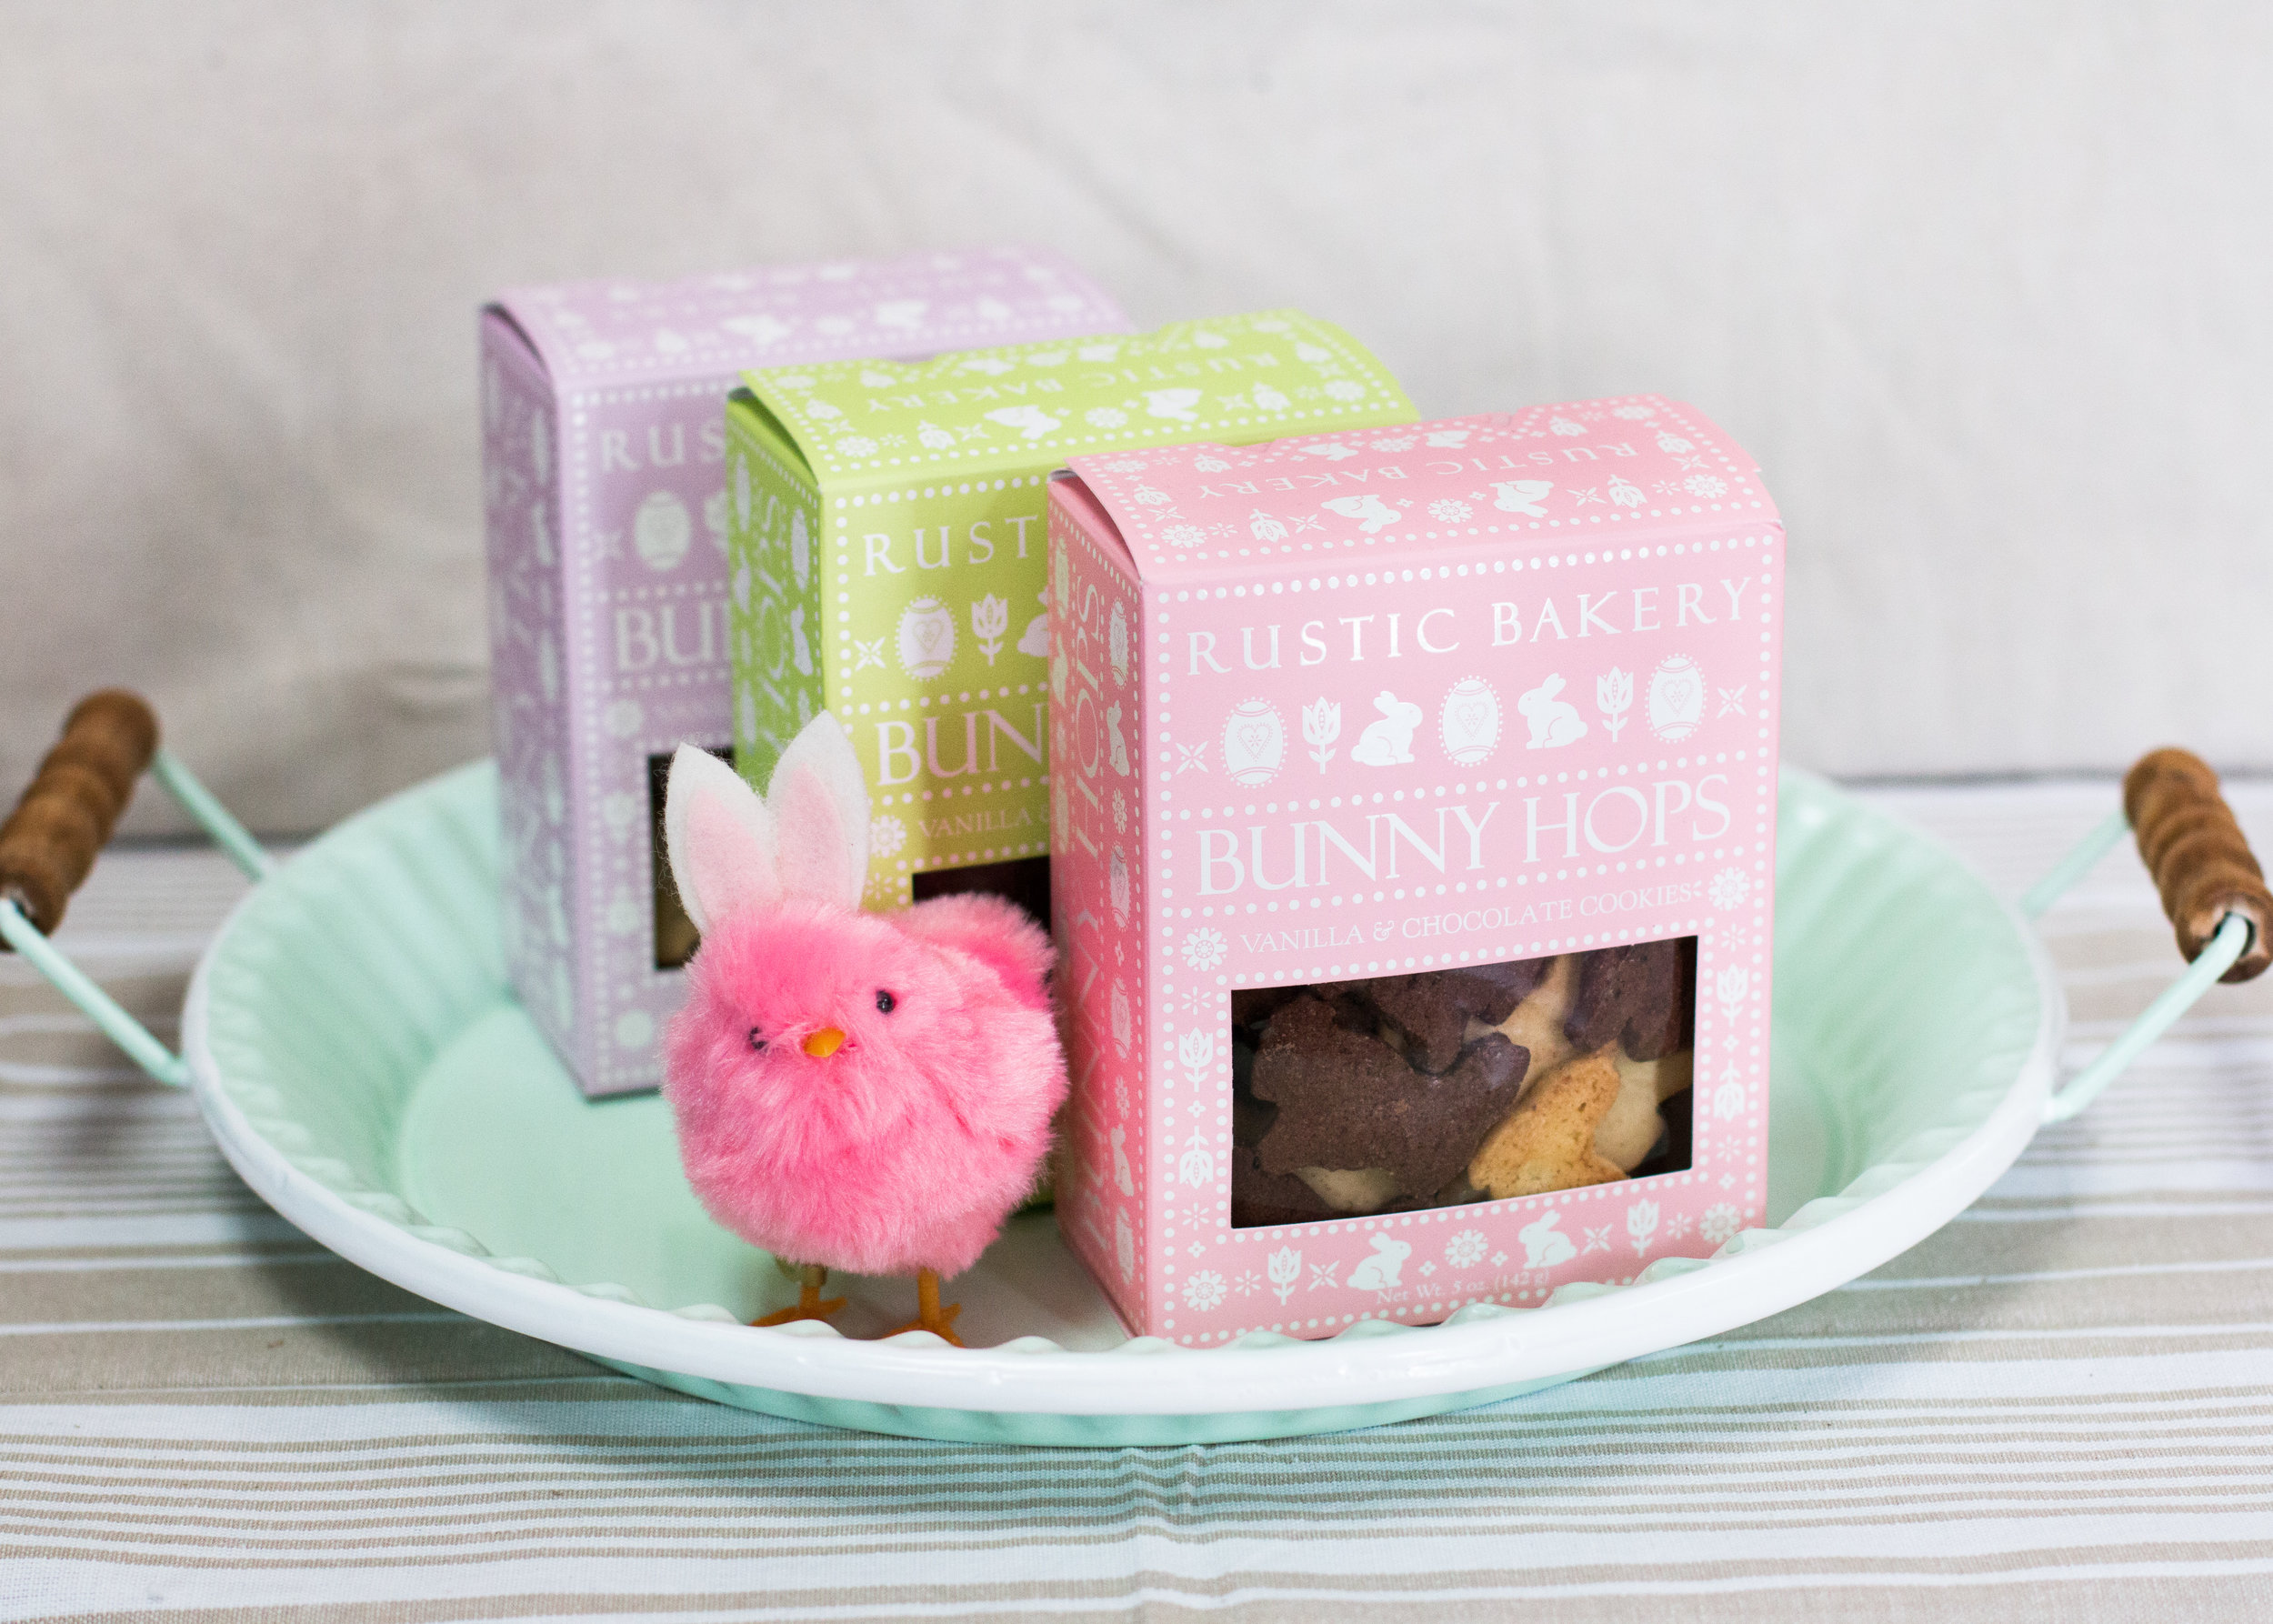 Bring along a pastel-hued box of adorable bunny cookies to serve up with coffee after the easter feast.